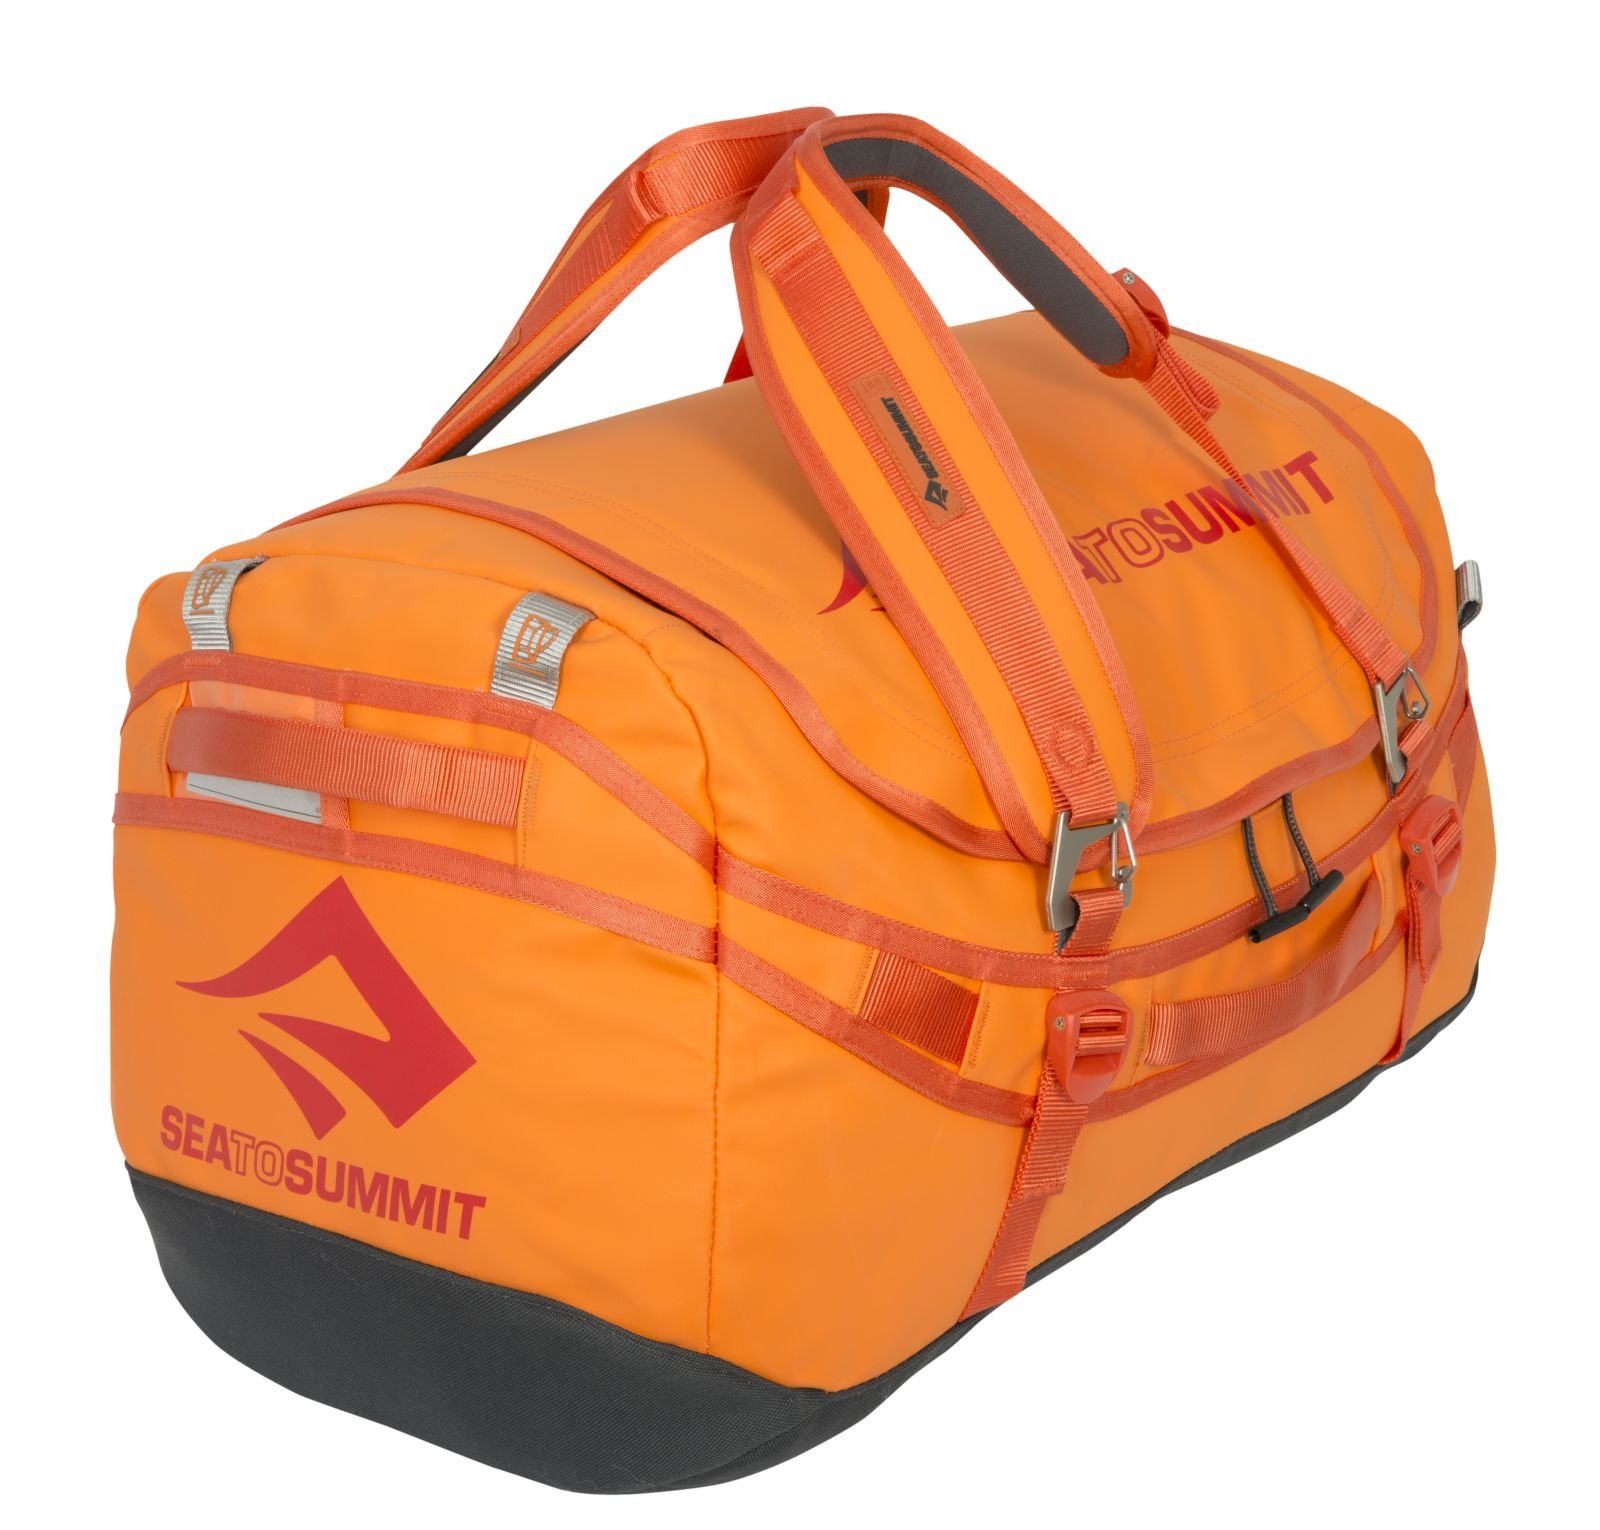 Sea to Summit Nomad Durable Travel Duffle & Backpack, Orange, 65 L